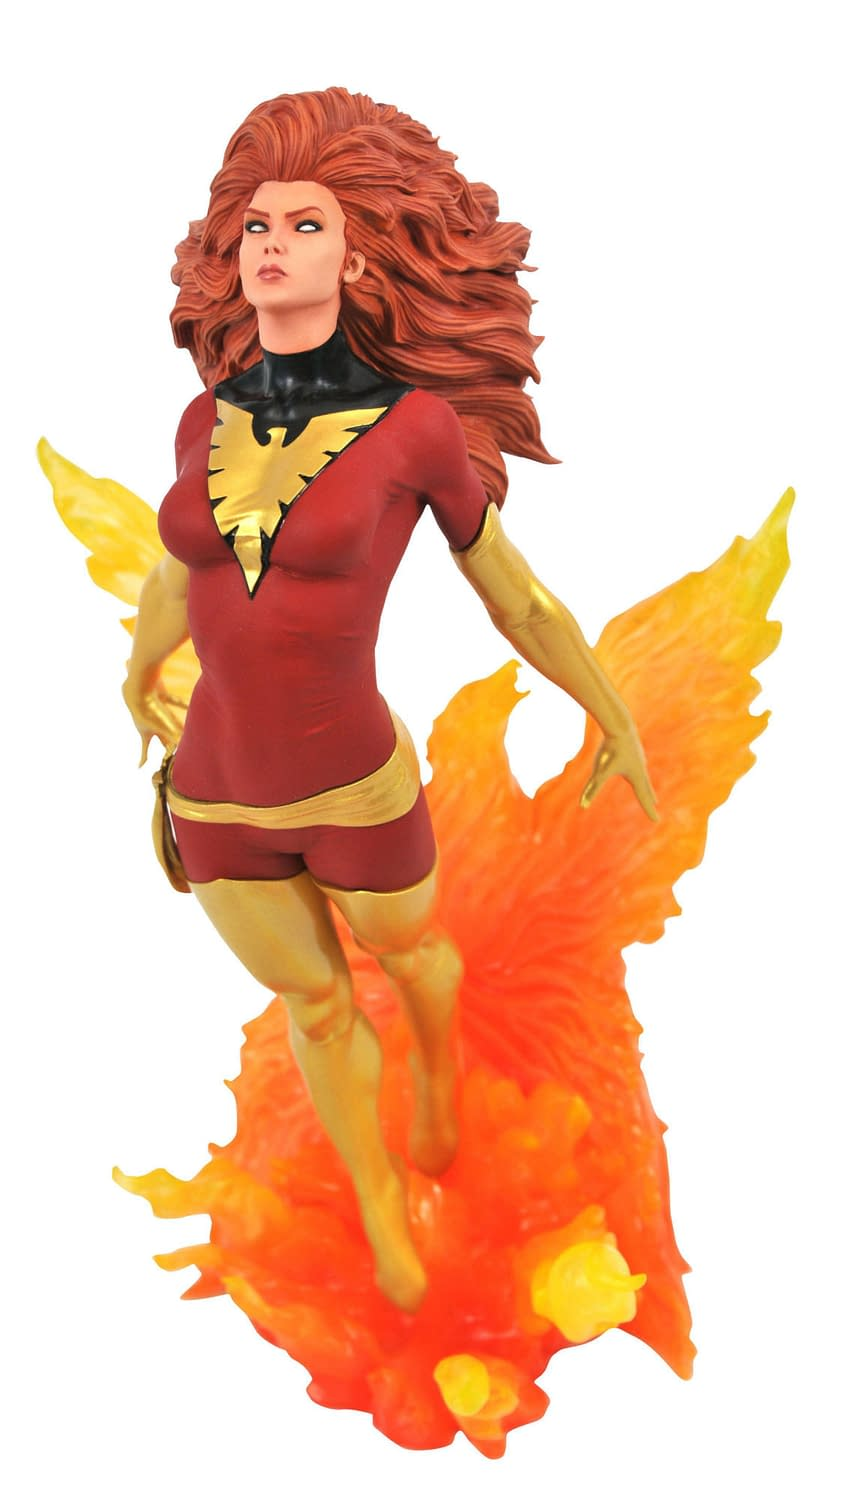 New Marvel Statues Coming From DST with X-Men and Black Widow